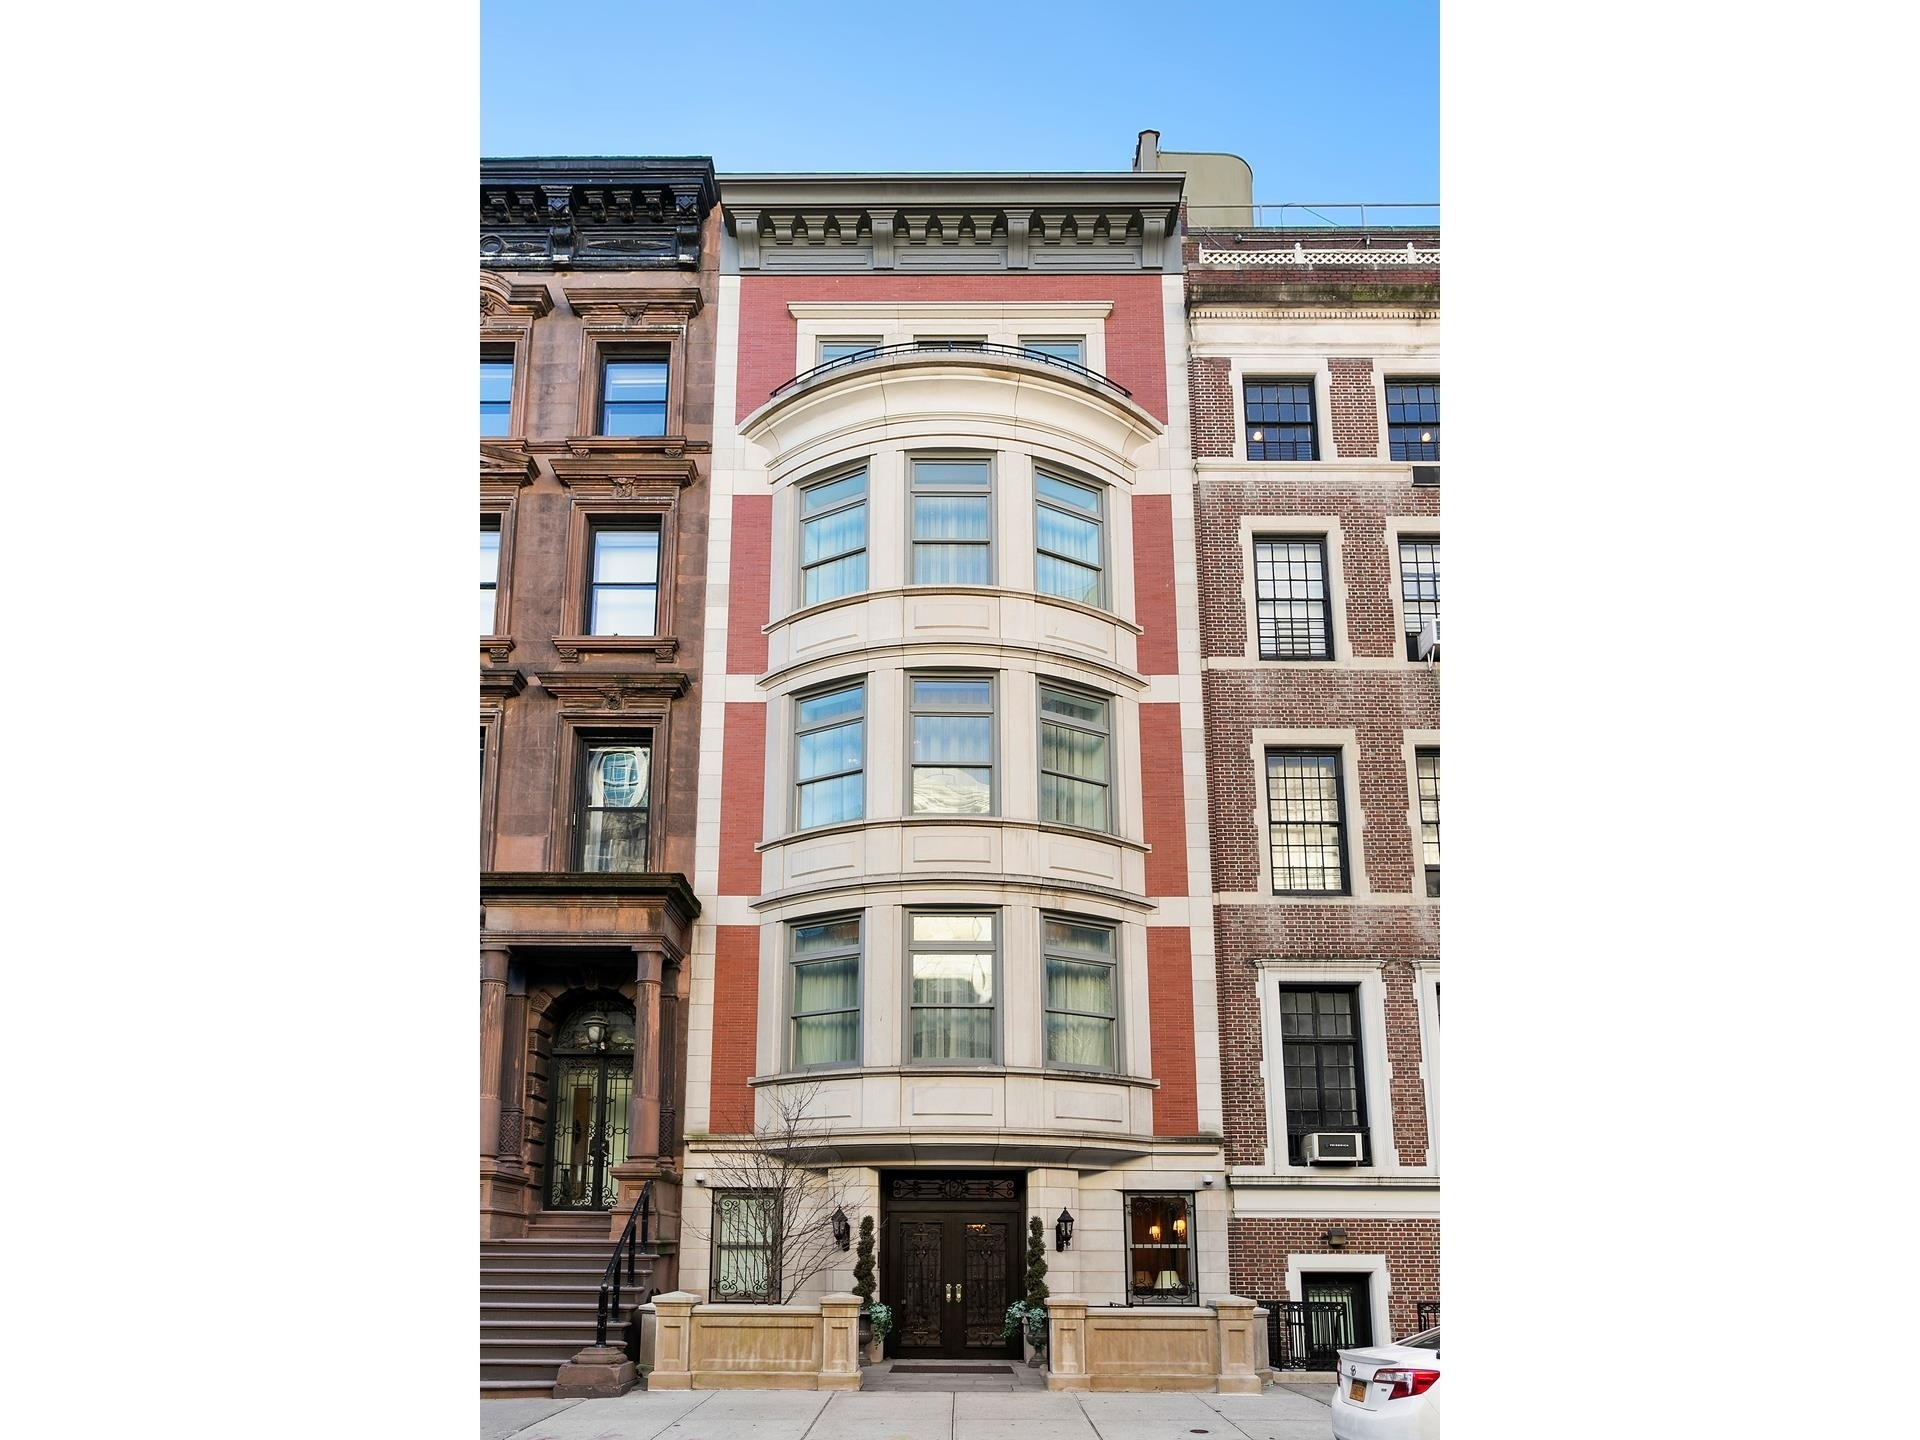 edificio en 12 East 63rd St, Lenox Hill, New York, NY